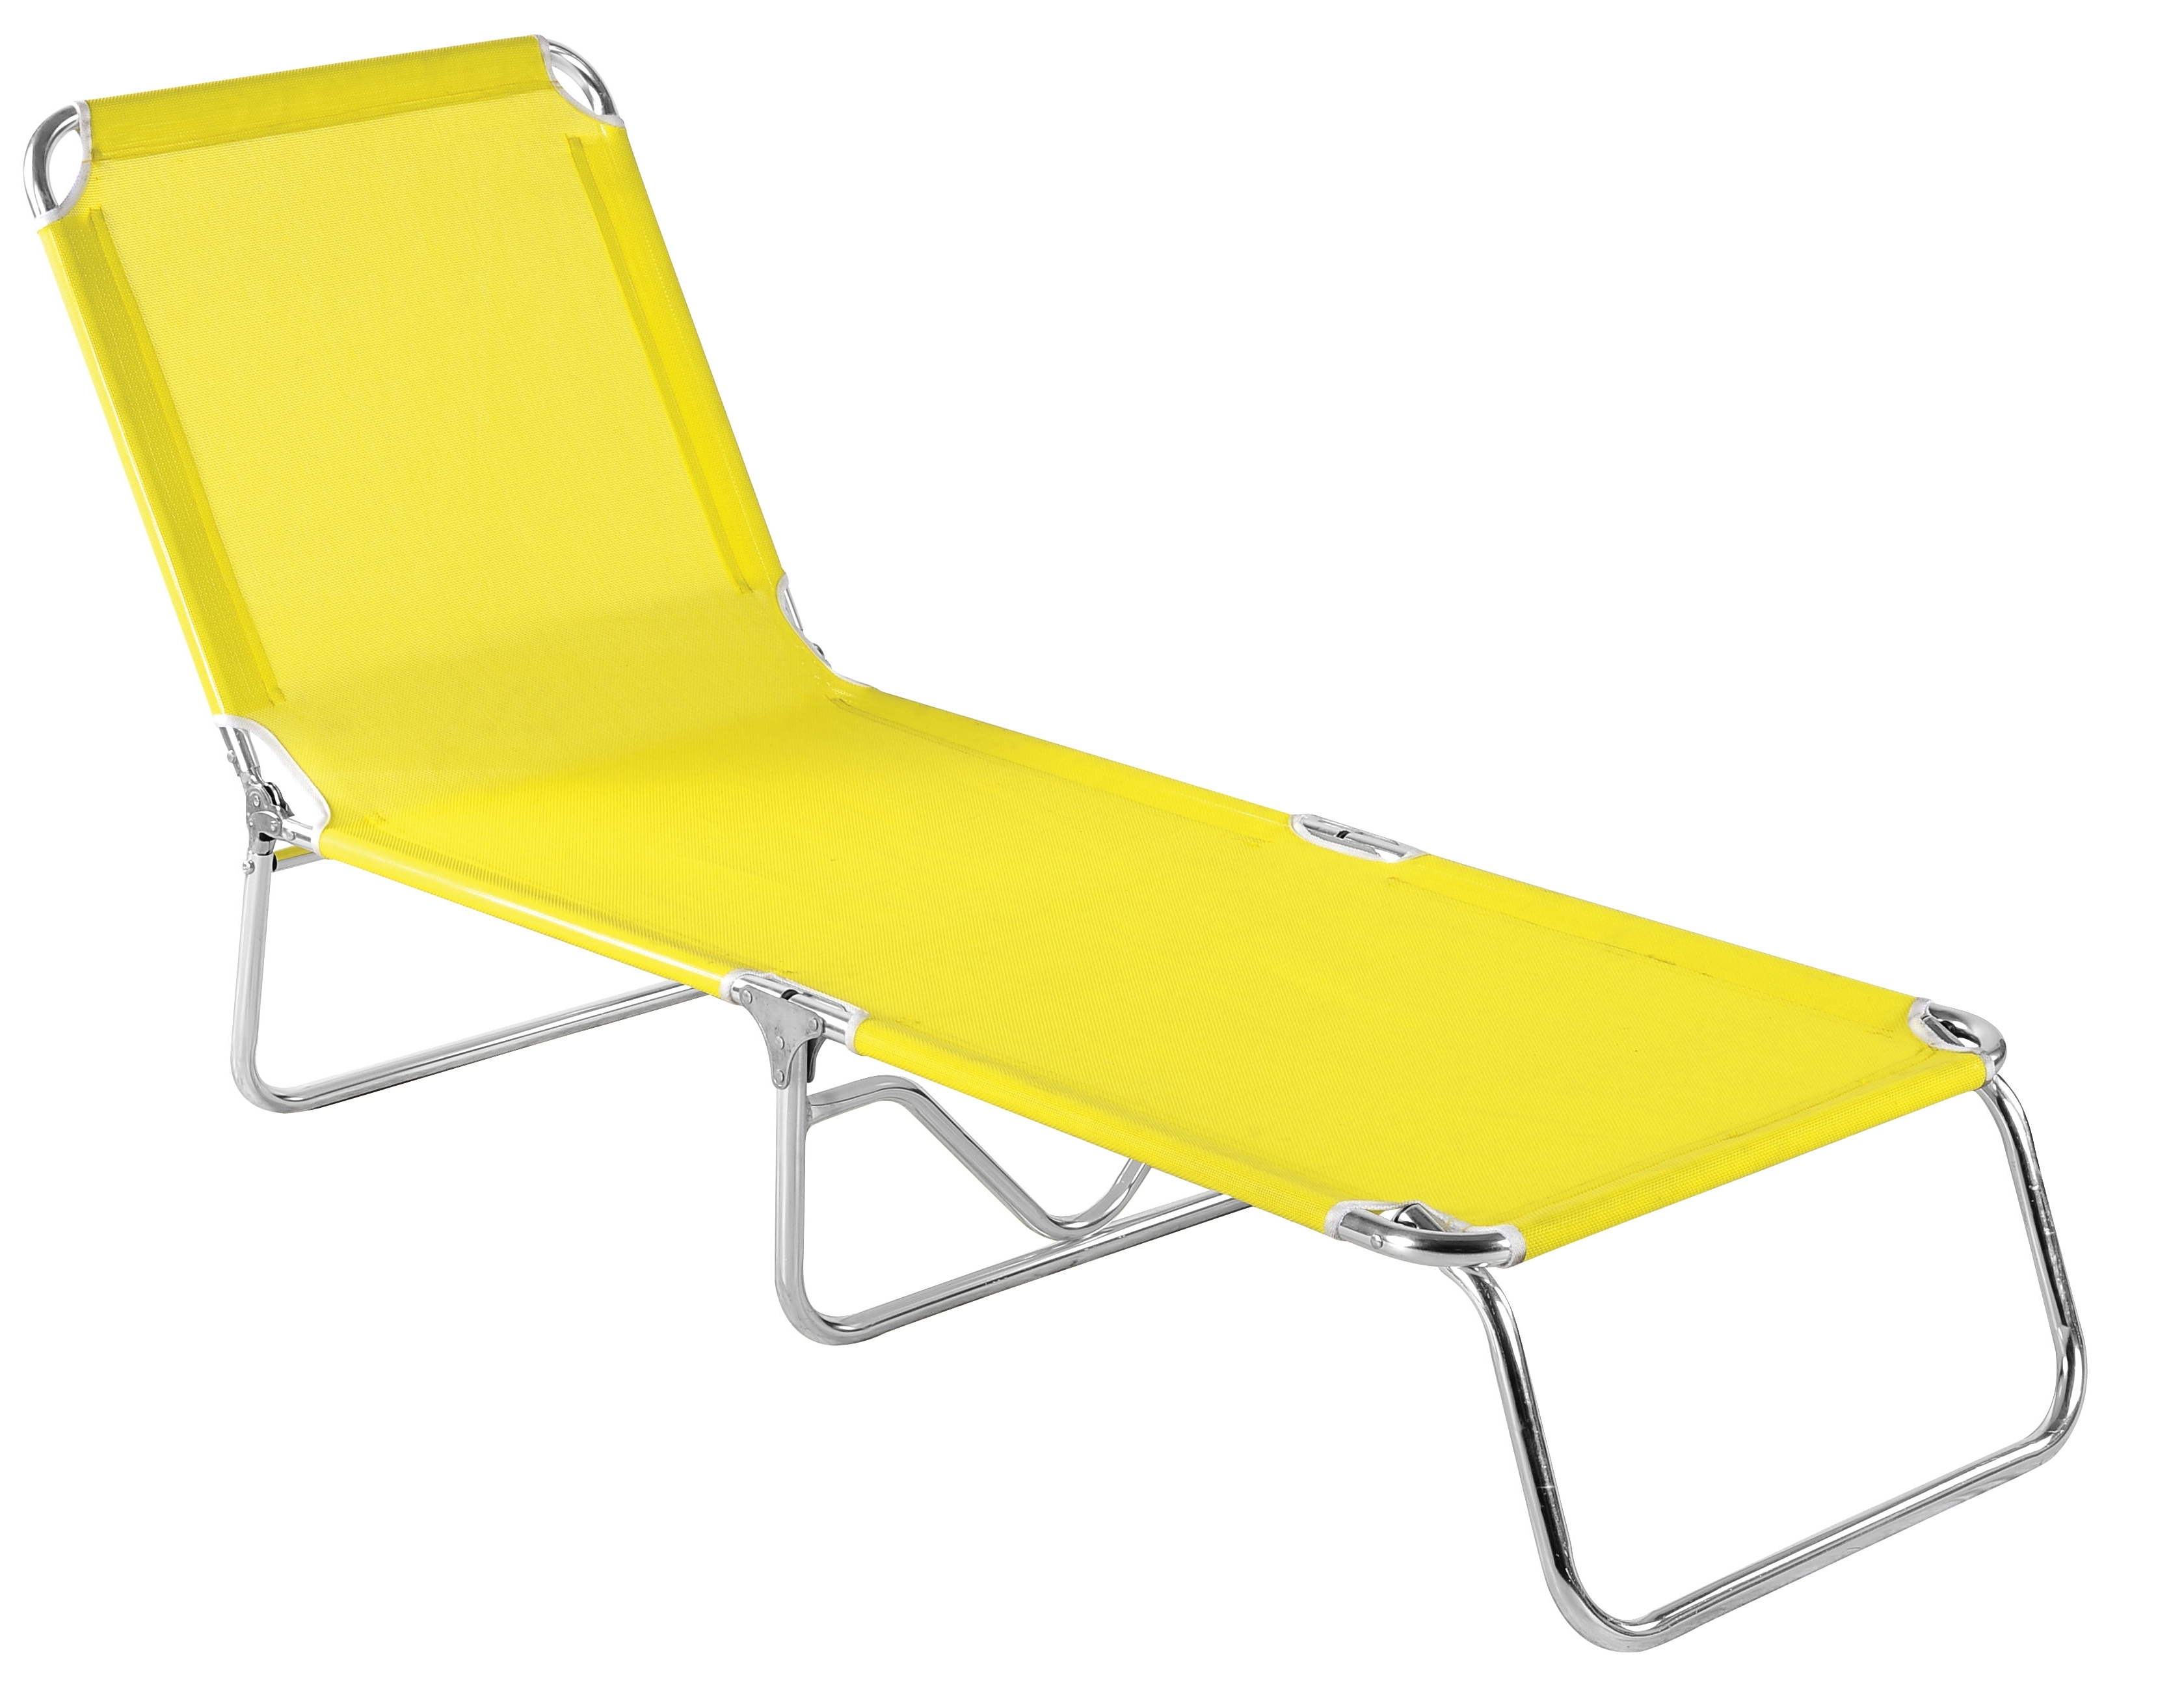 Jelly Chaise Lounge Chairs with Most Up-to-Date Folding Jelly Chaise Lounge Chair • Lounge Chairs Ideas